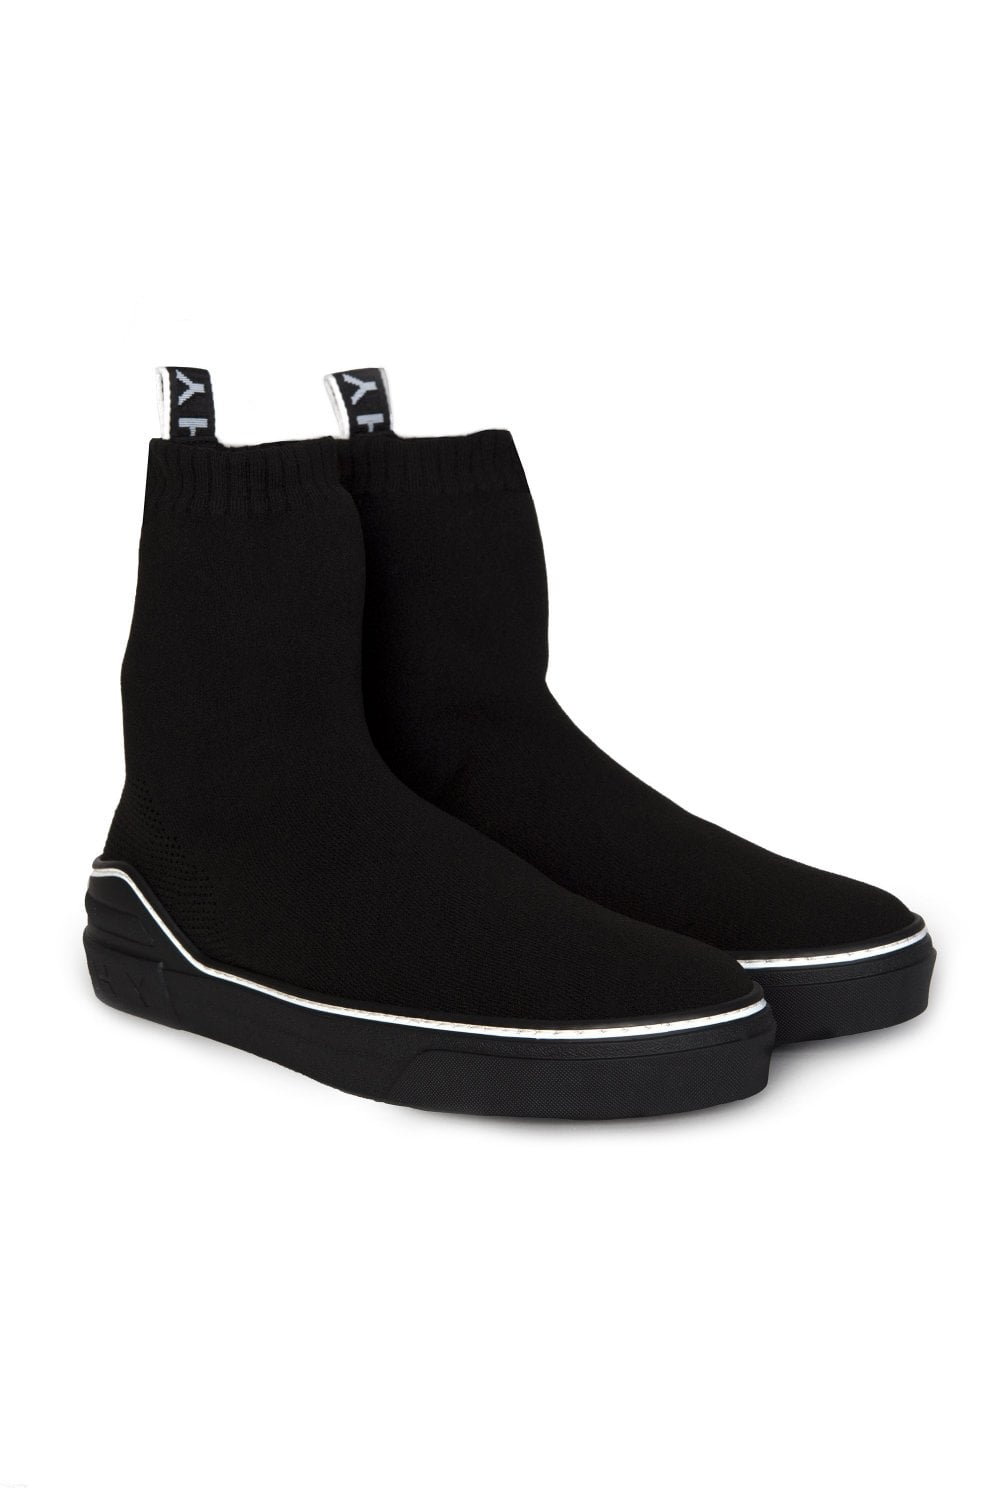 GIVENCHY George V Sock Sneakers Black